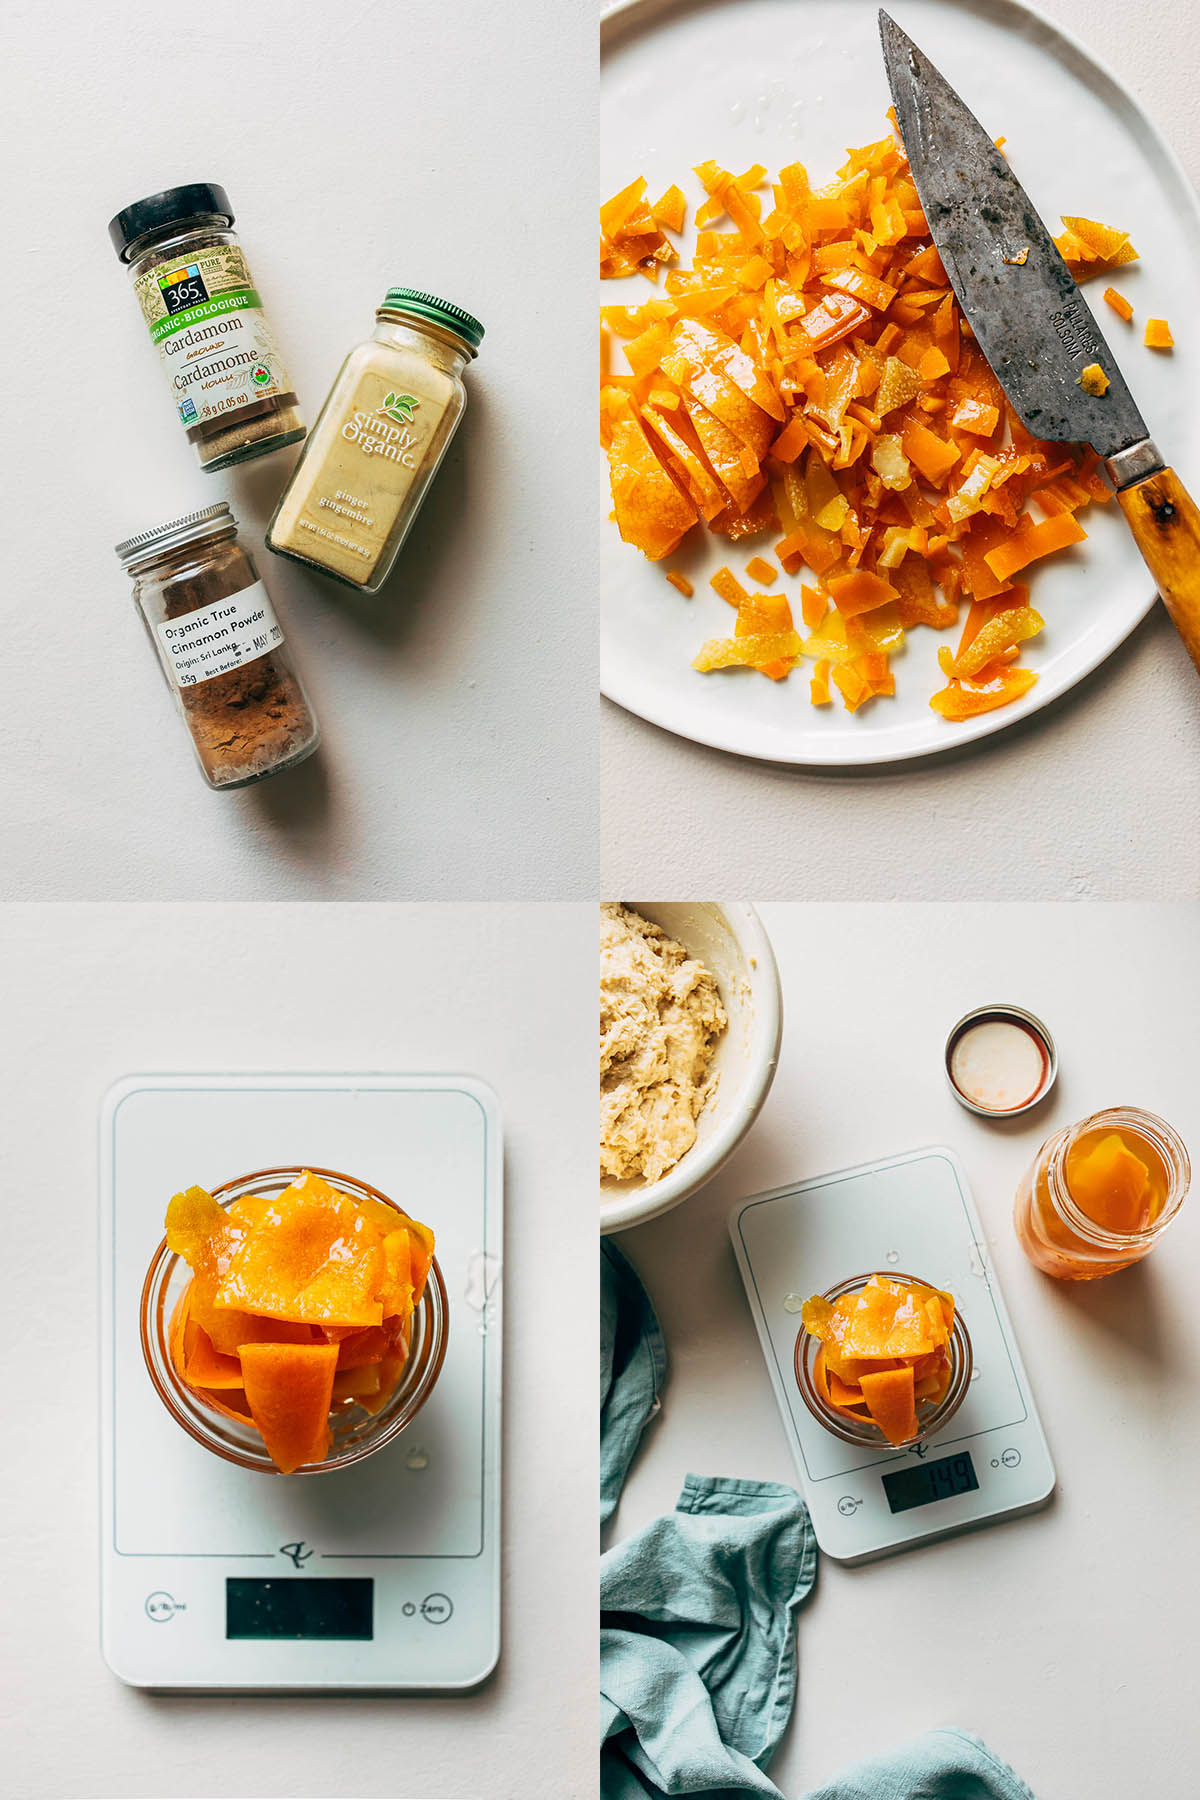 Four images, clockwise from upper left: three spice bottles on white background, chopped mixed candied peel on a small plate, candied mixed peel in a jar, and mixed peel weighed on a scale.